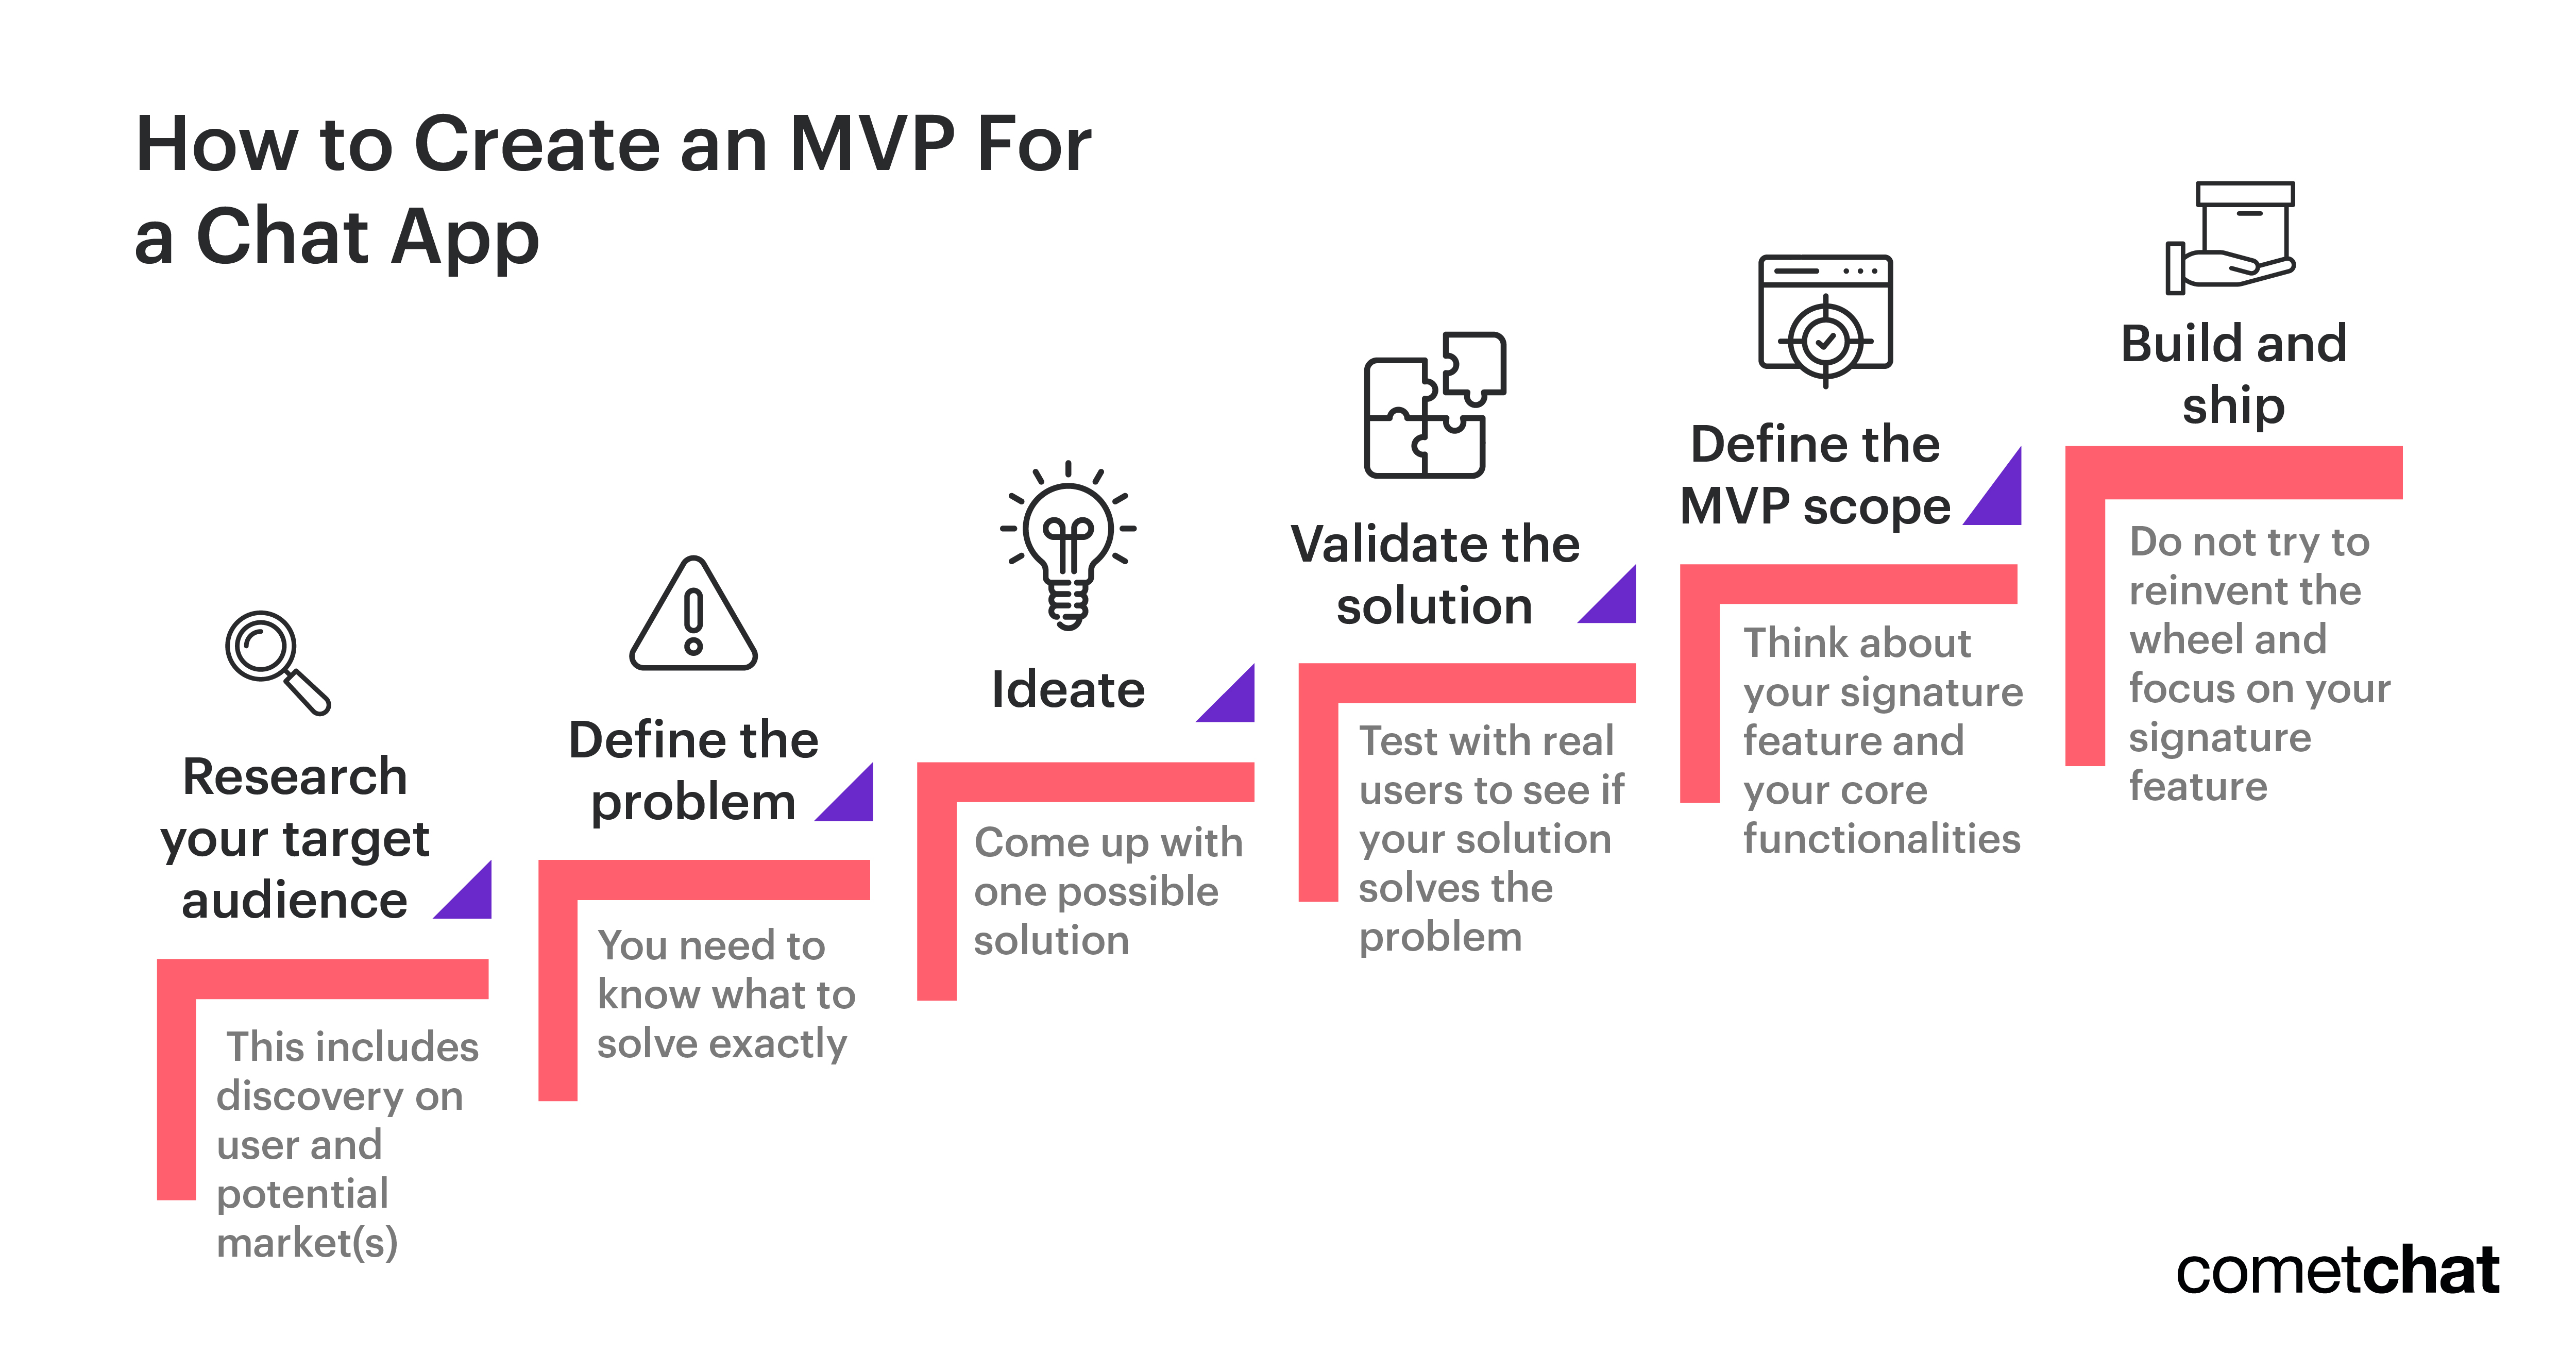 How to Create an MVP For a Chat App